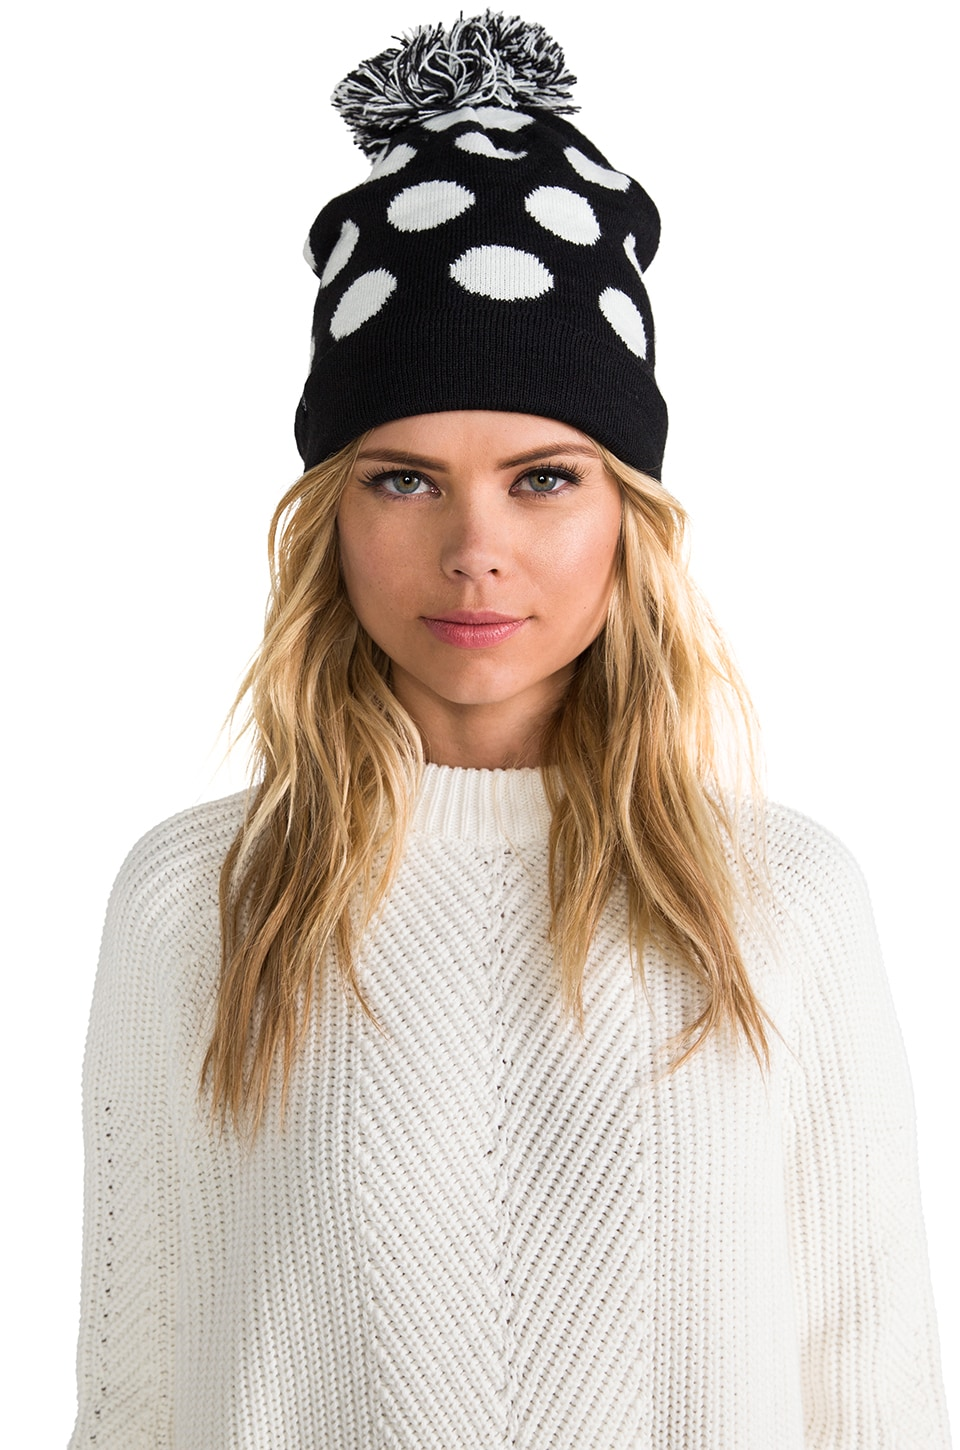 Plush Polka Dot Pom-Pom Hat in Black/White